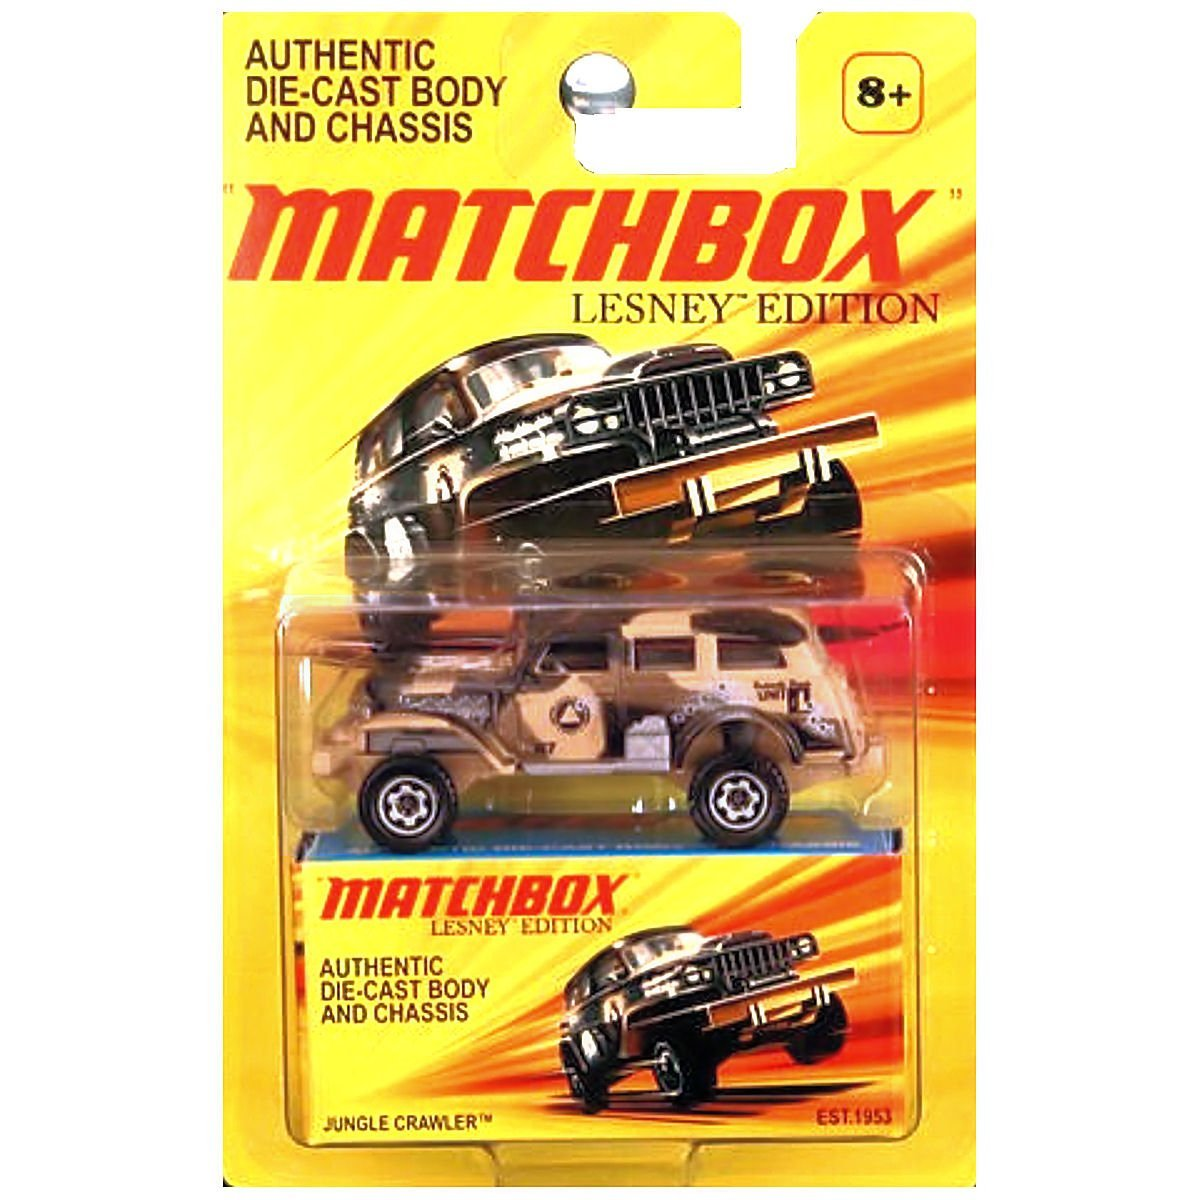 LESNEY Edition JUNGLE CRAWLER MILITARY VEHICLE, GREAT GIFT By Matchbox by